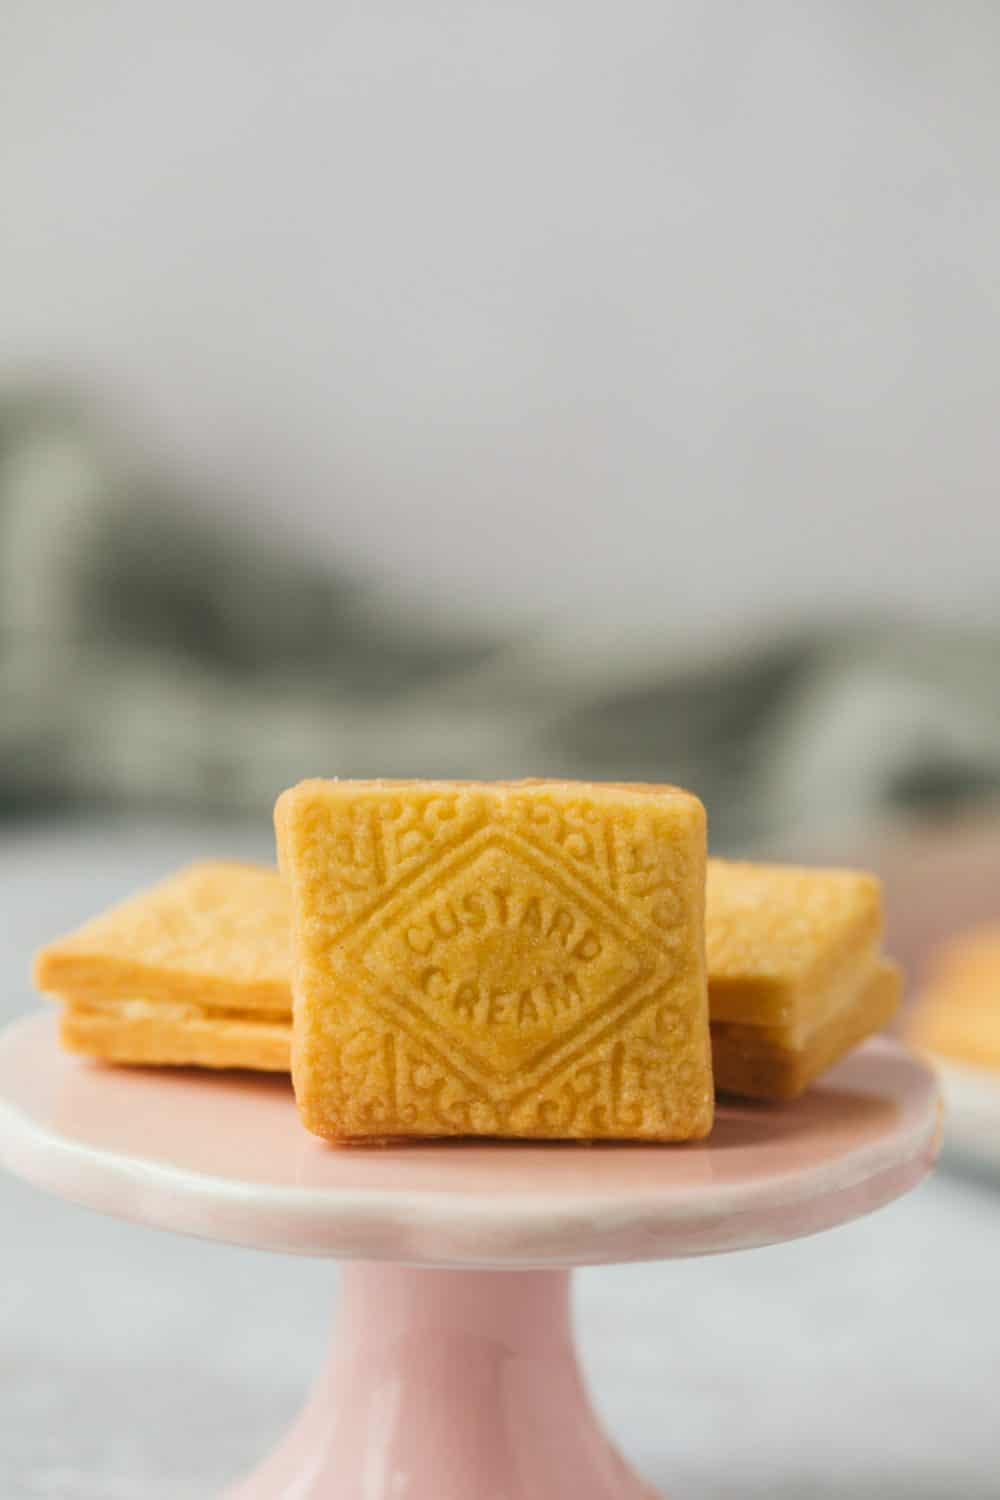 A Custard Cream biscuit on its side.